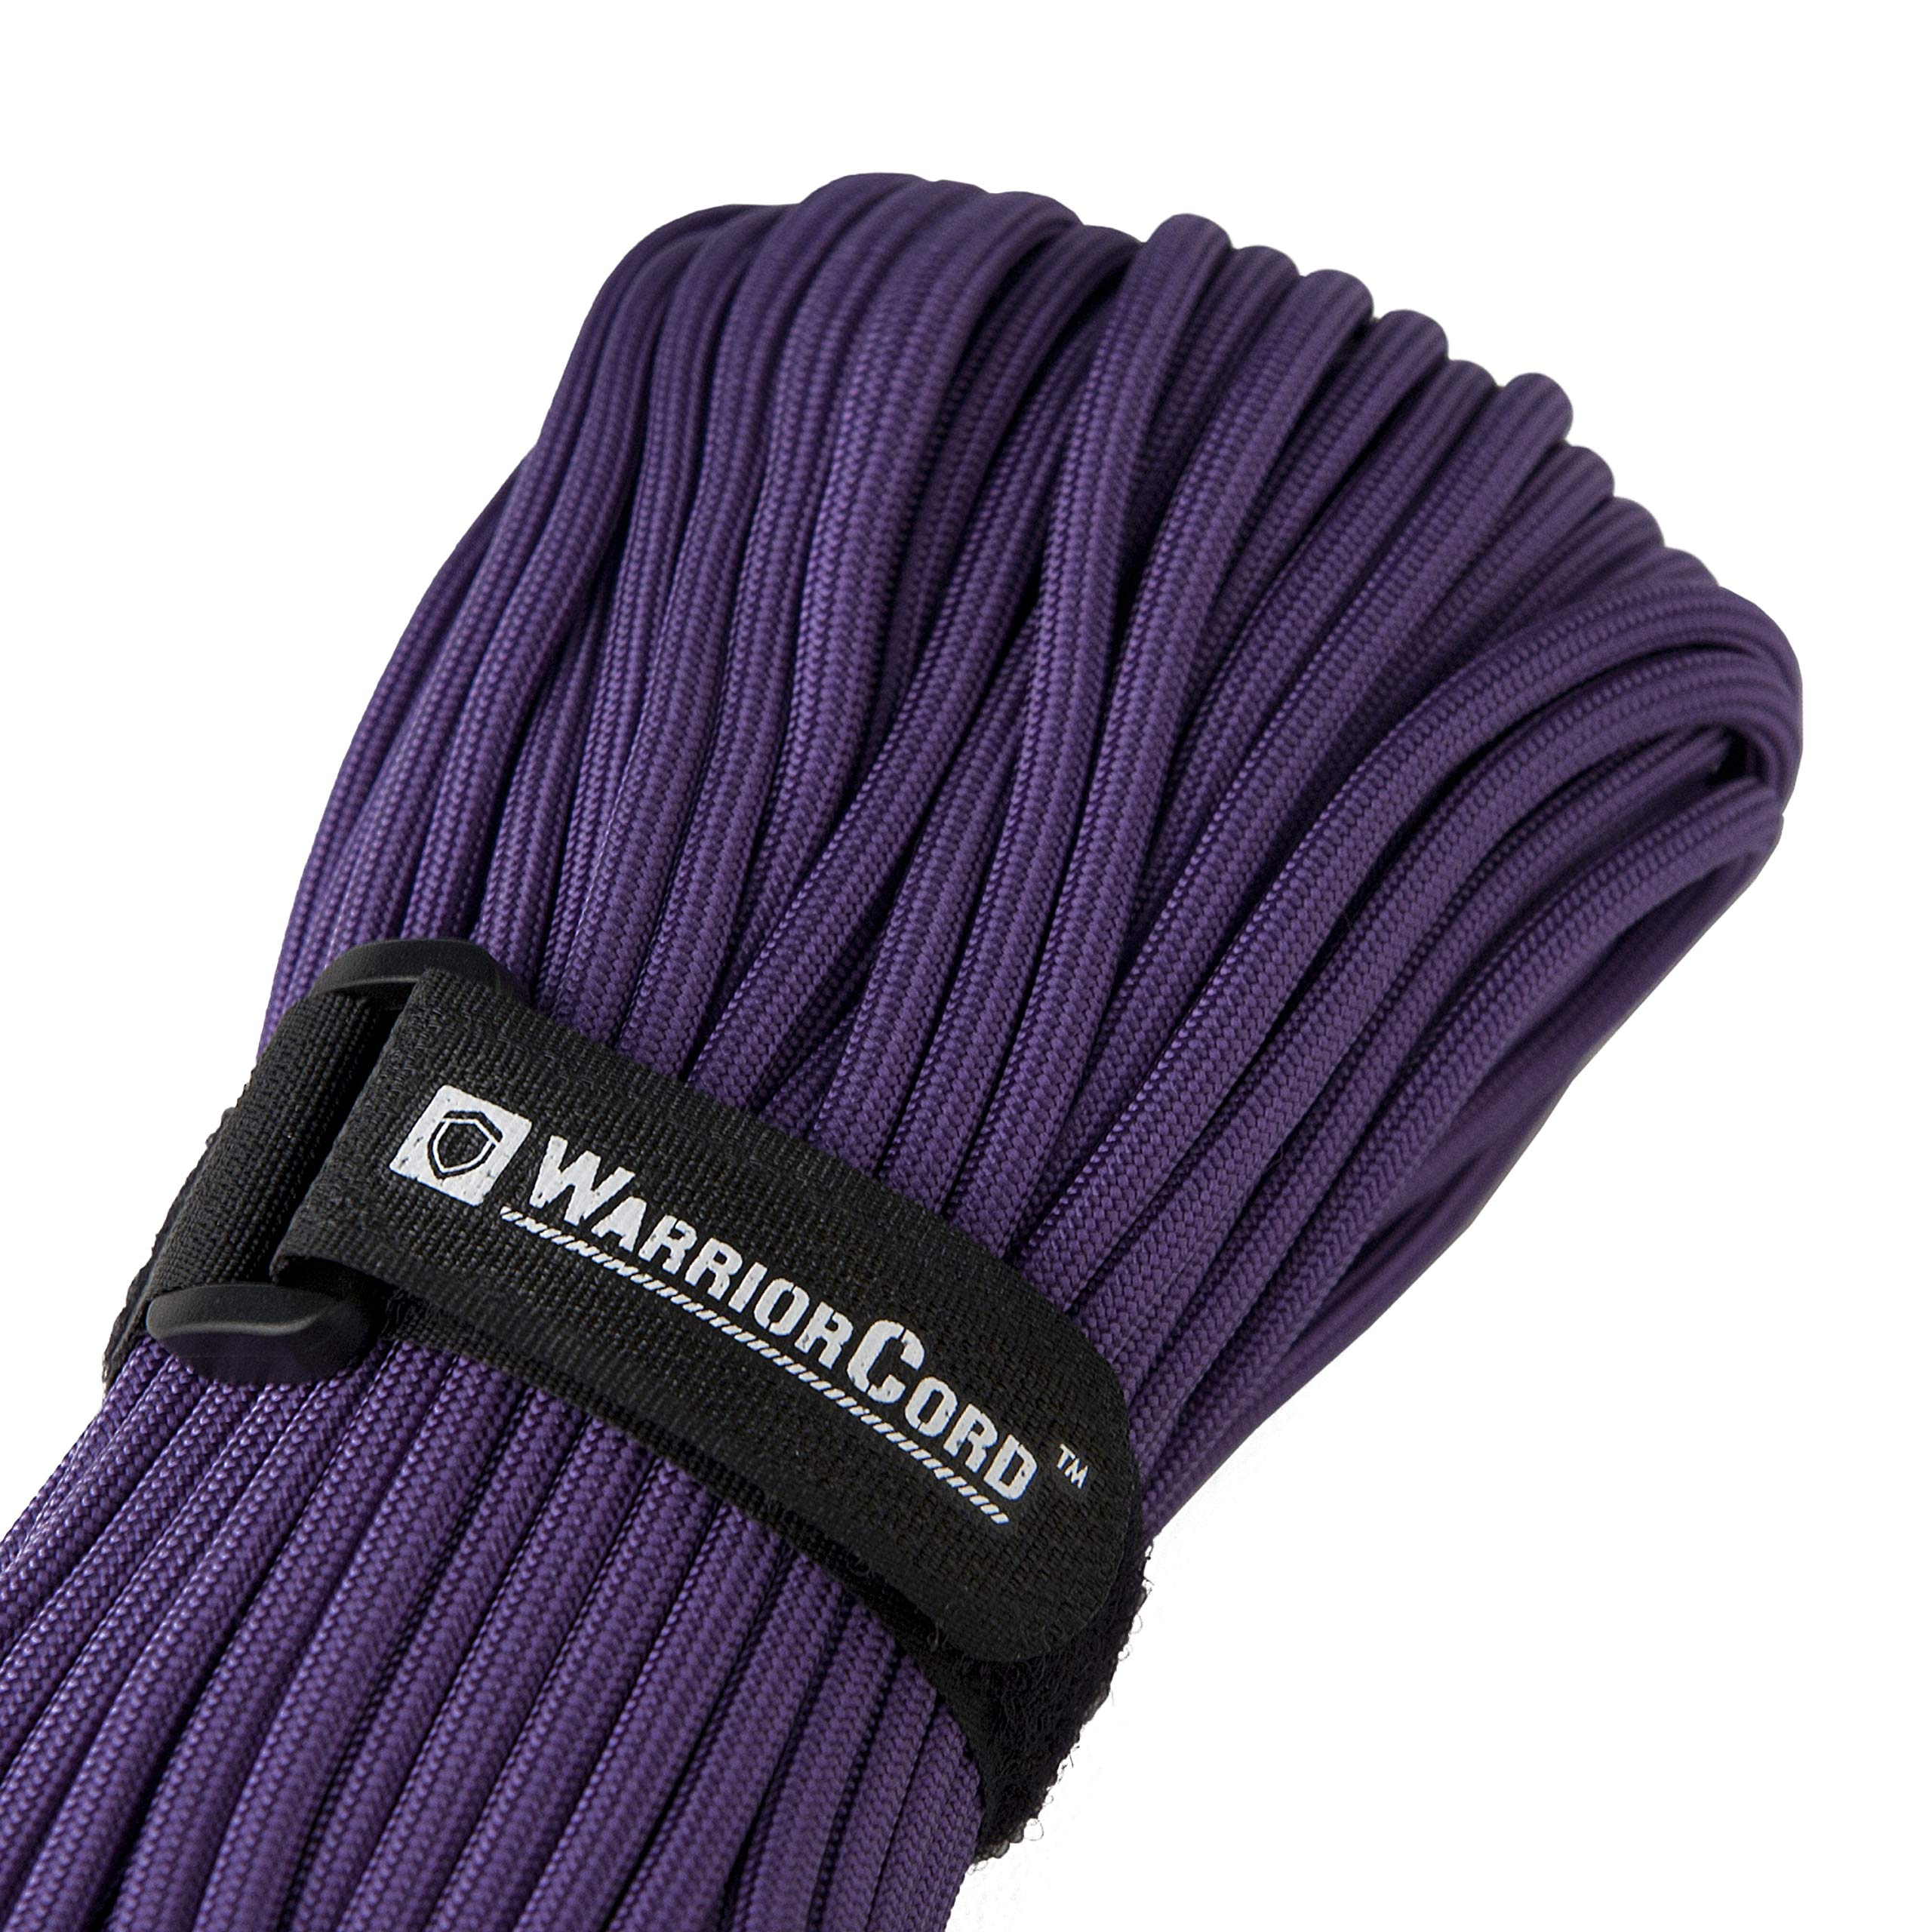 TITAN WarriorCord | PURPLE | 103 CONTINUOUS FEET | Exceeds Authentic MIL-C-5040, Type III 550 Paracord Standards. 7 Strand, 5/32'' (4mm) Diameter, Military Parachute Cord. by Titan Paracord (Image #1)